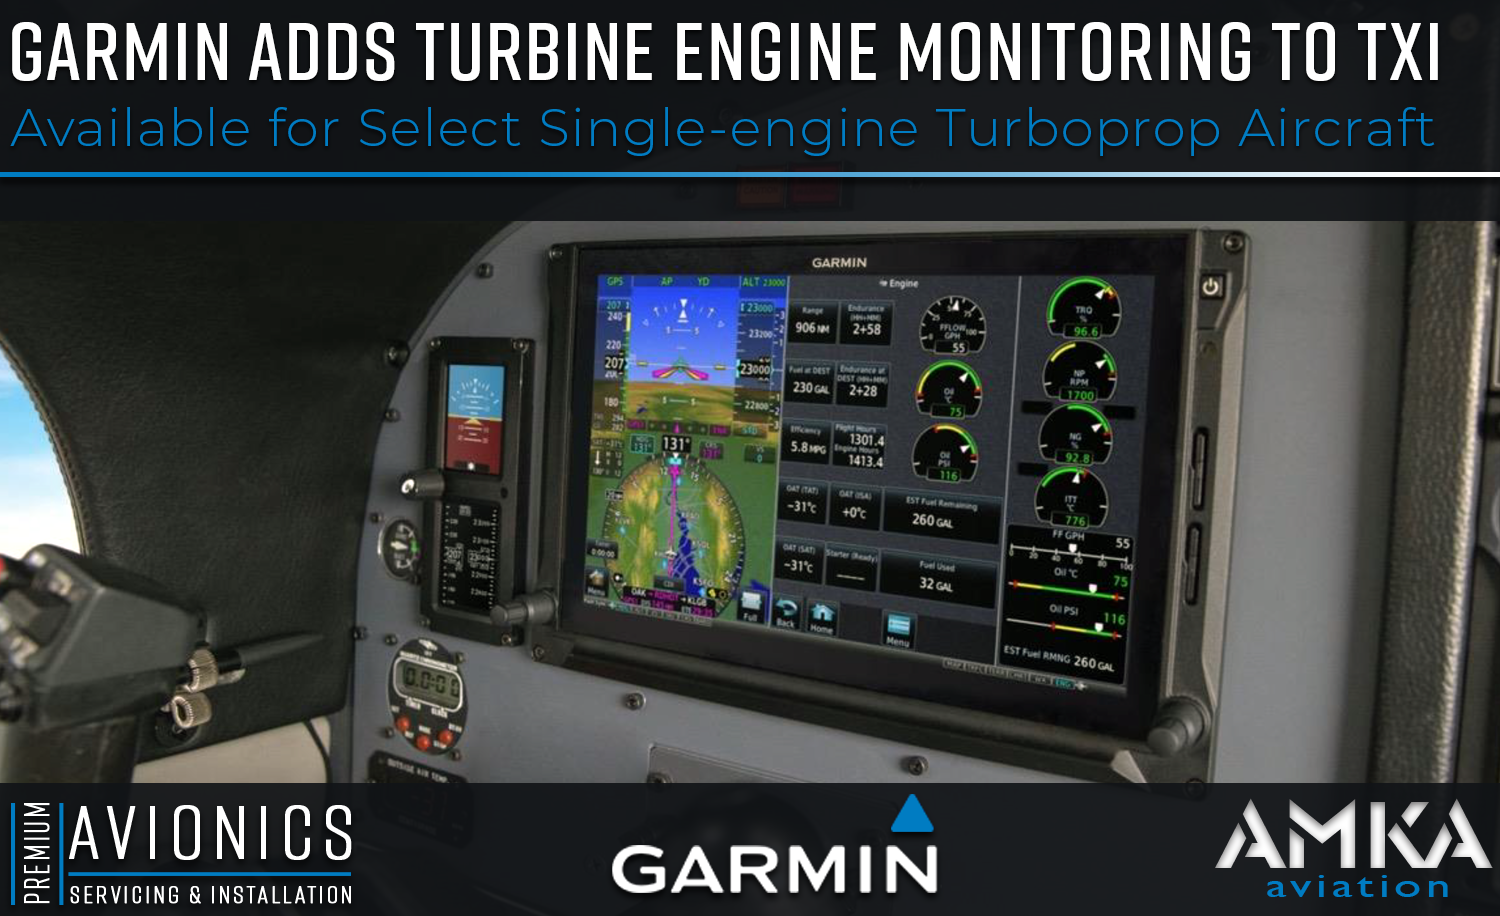 Garmin Adds Turbine Engine Monitoring to TXi - AMKA Aviation